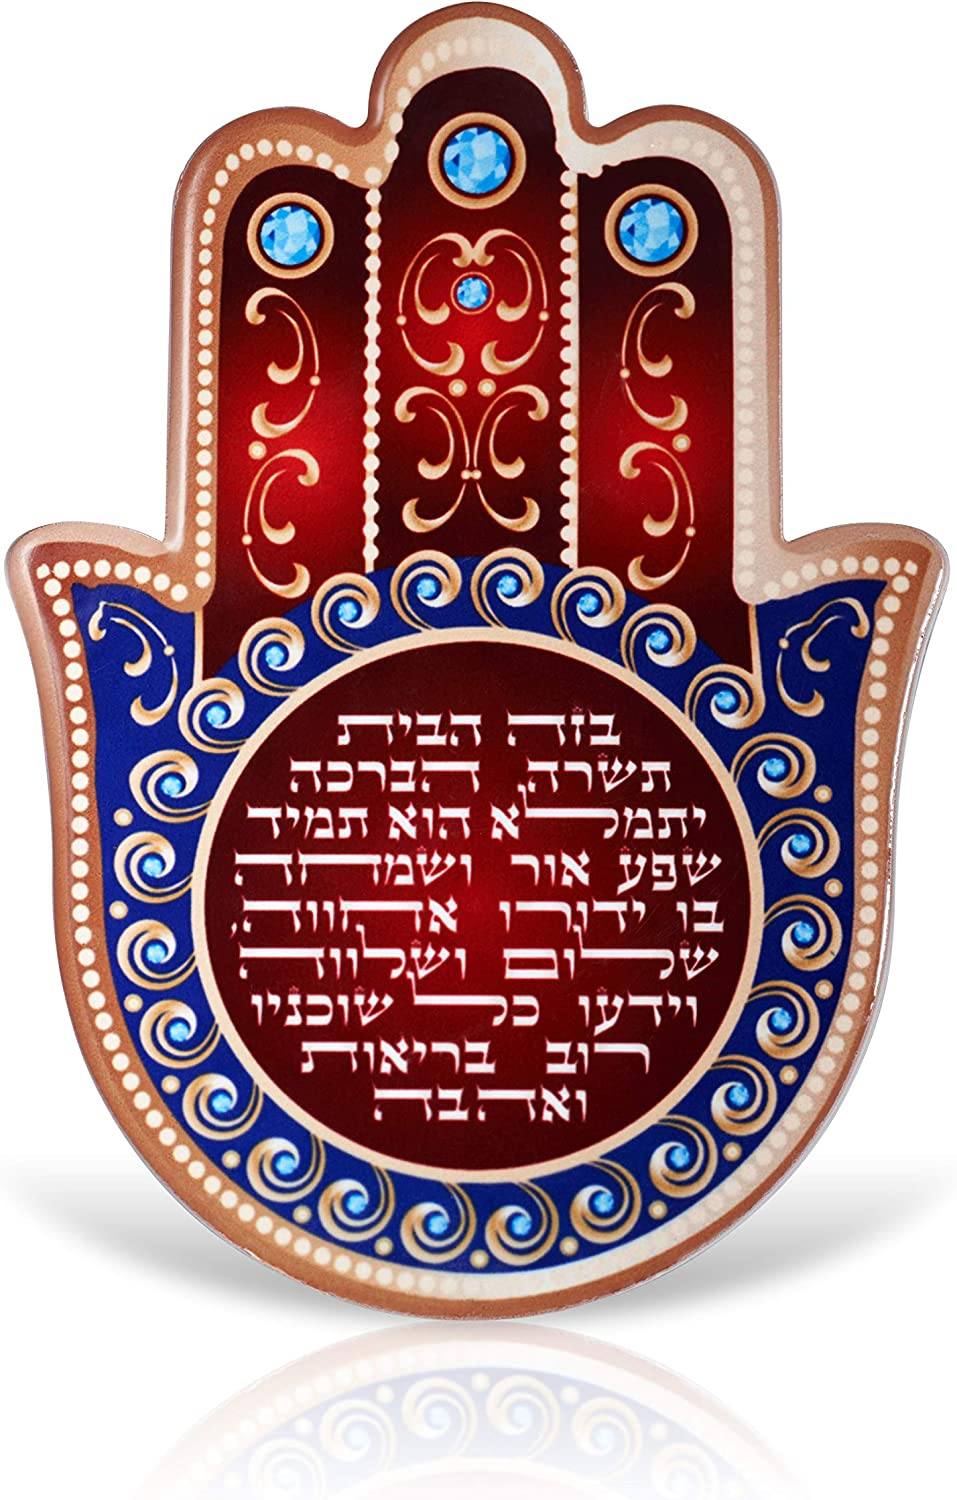 A&S Mezuzot Hamsa Wall Decor Red/Blue Evil Eye Charm Protection Amulet Home/Business Good Luck Charms in English/Hebrew Blessings (Red/Blue, Hebrew Blessing)